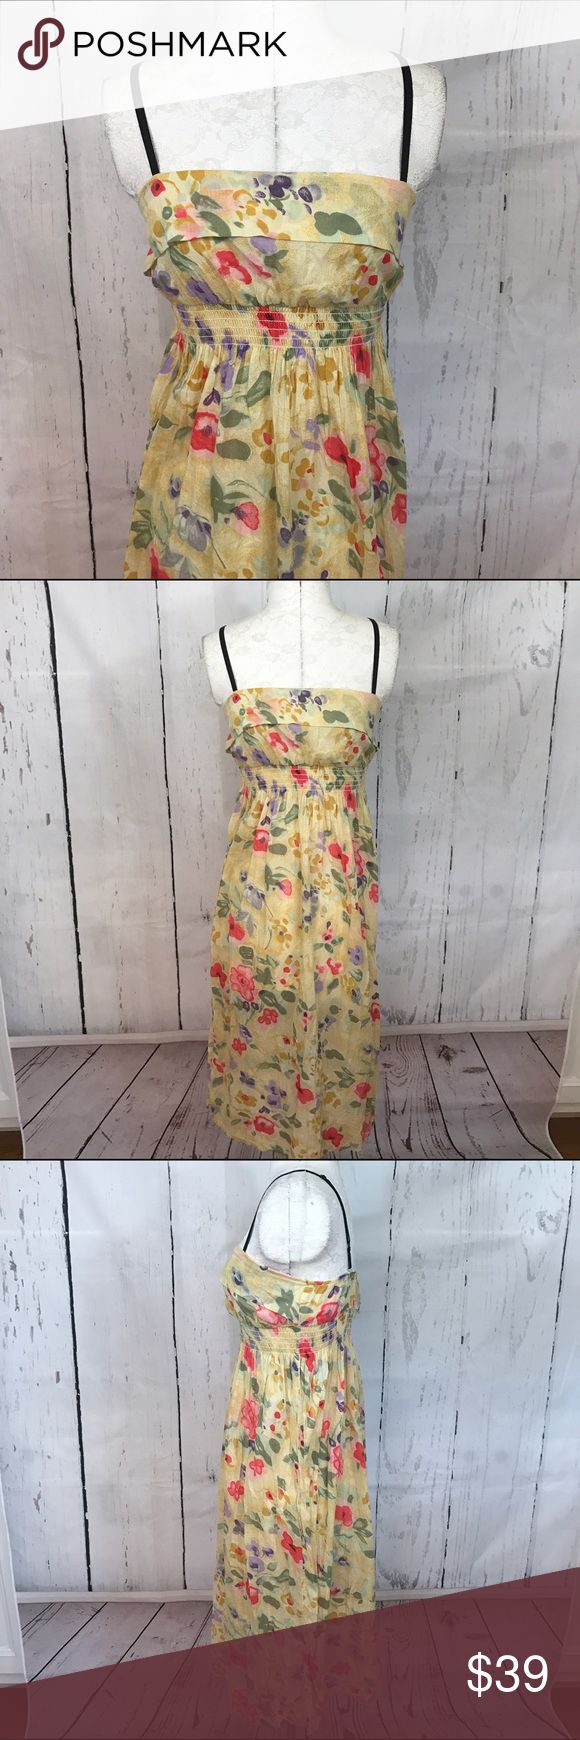 "❤❤ NWT URBAN RENEWAL VINTAGE FABRIC DRESS B39 Condition: NWT  Approximate measurements (laying flat): 13"" bust 35.5"" length pit to hem  Item location: bin 39  ❤no trades/no modeling❤ Urban Outfitters Dresses"